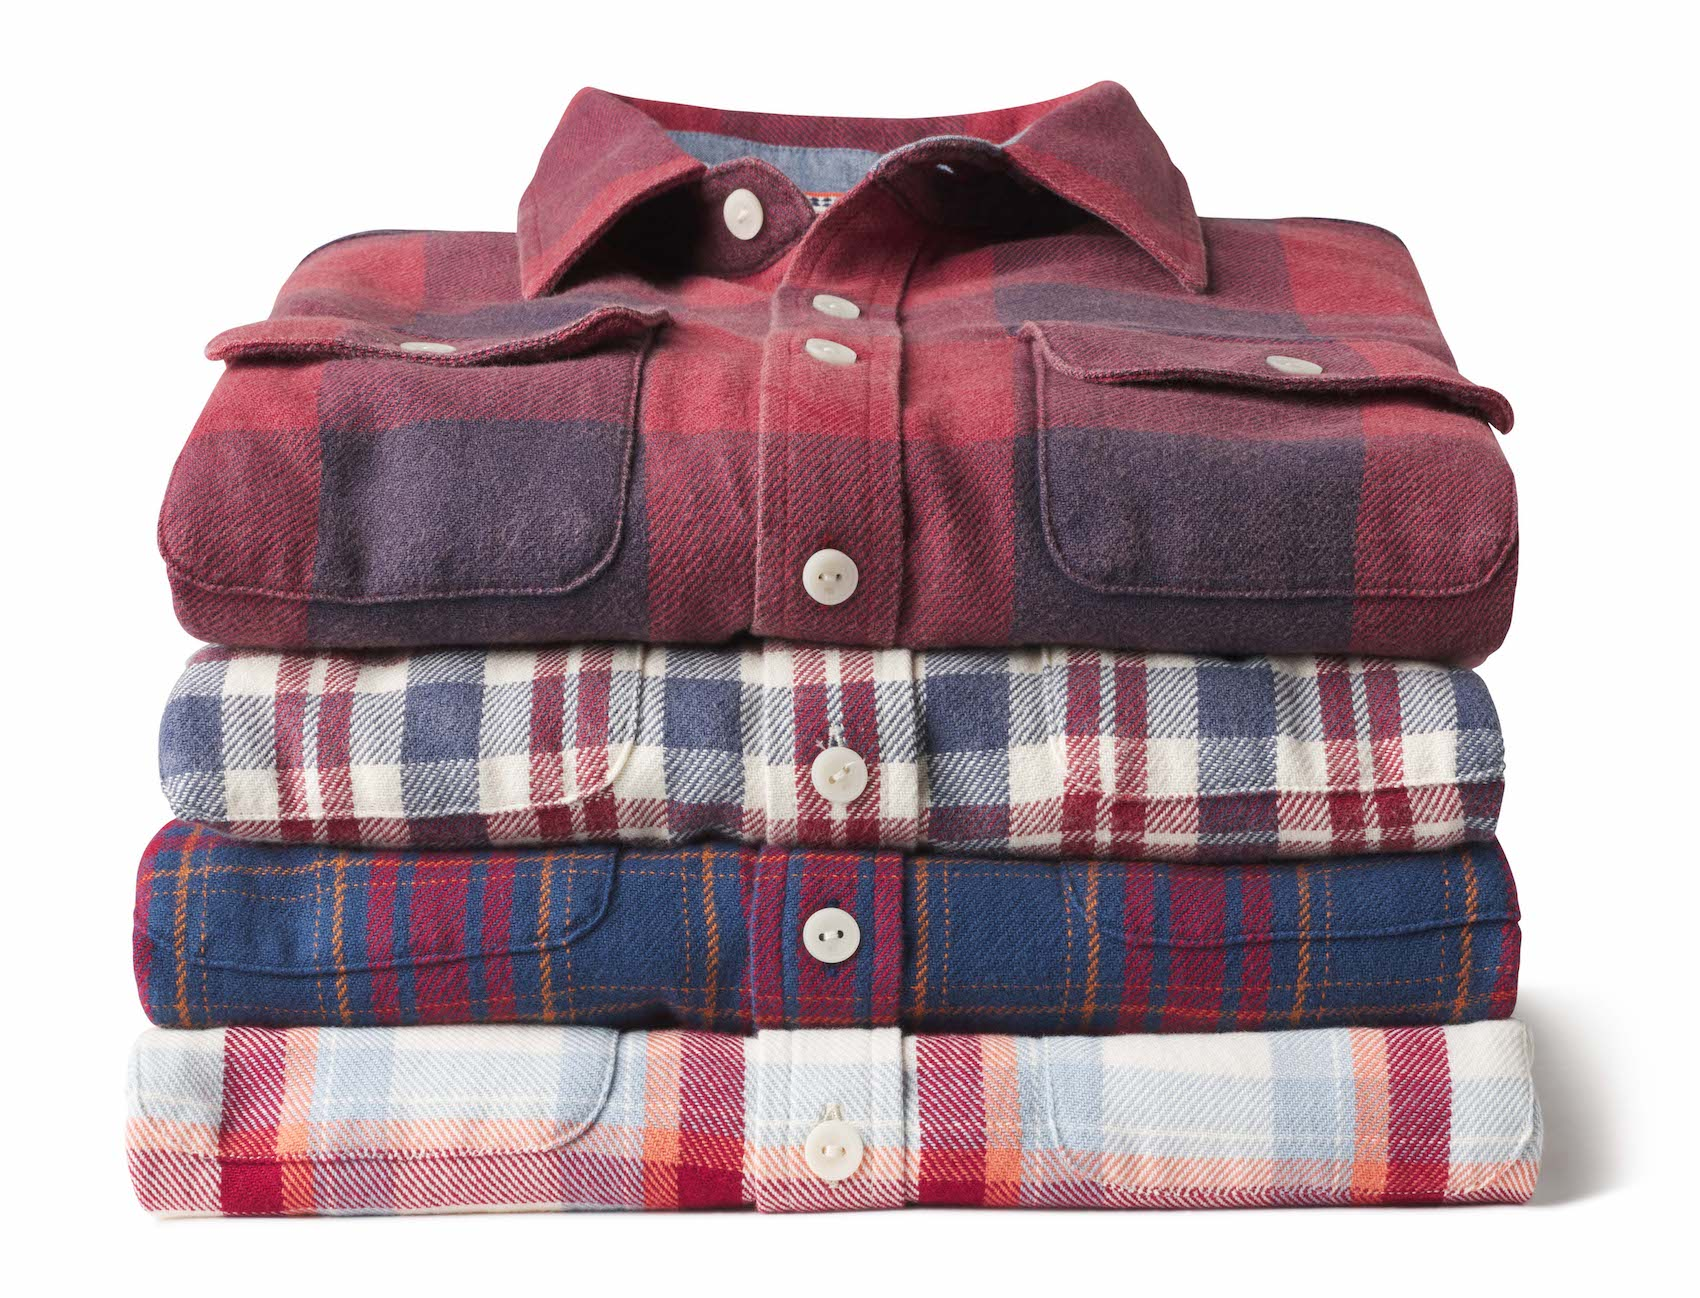 The-Normal-Brand-Editorial-Damion-Lloyd-Photography-Laydown-Commercial-Apparel-Product-Clothing-Art-Directed-Los-Angeles-Orange-County-plaid-red-blue